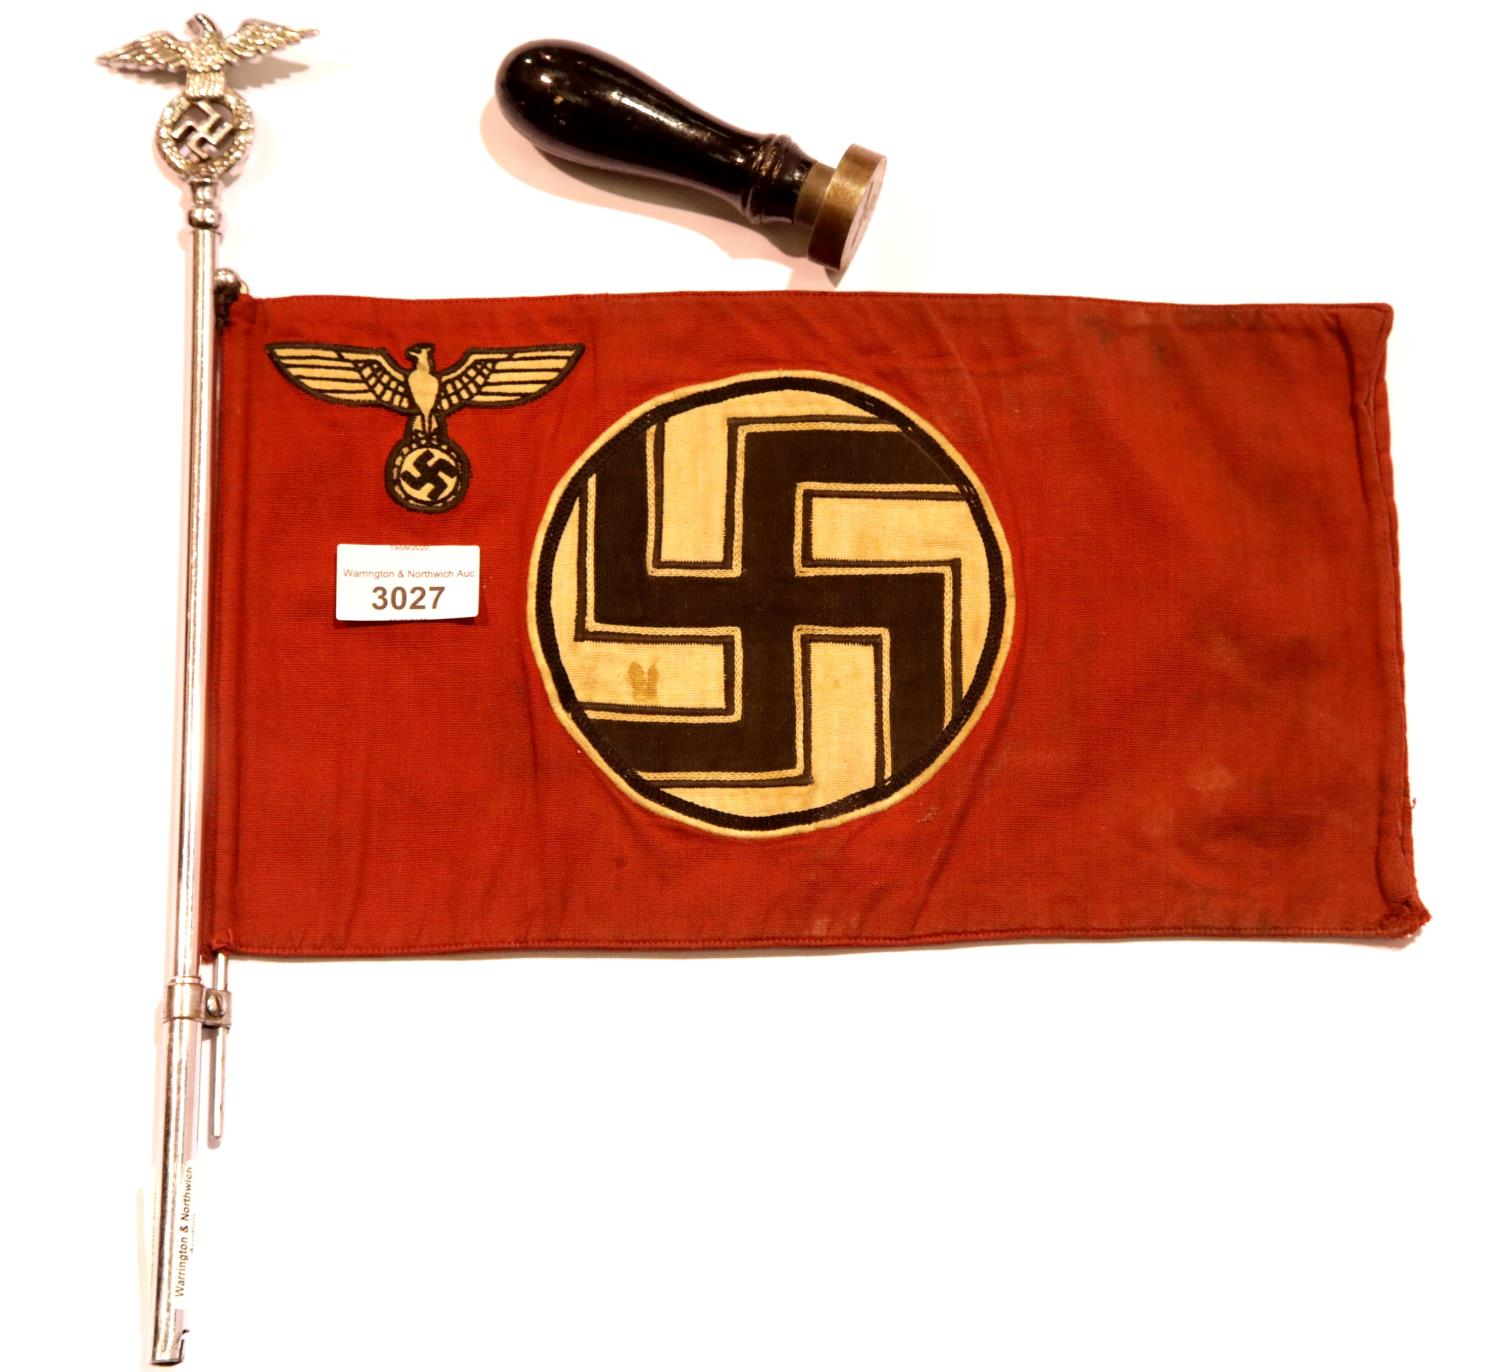 Lot 3027 - German WWII type car pennant on a chromed eagle and swastika pole and two Nazi wooden handled